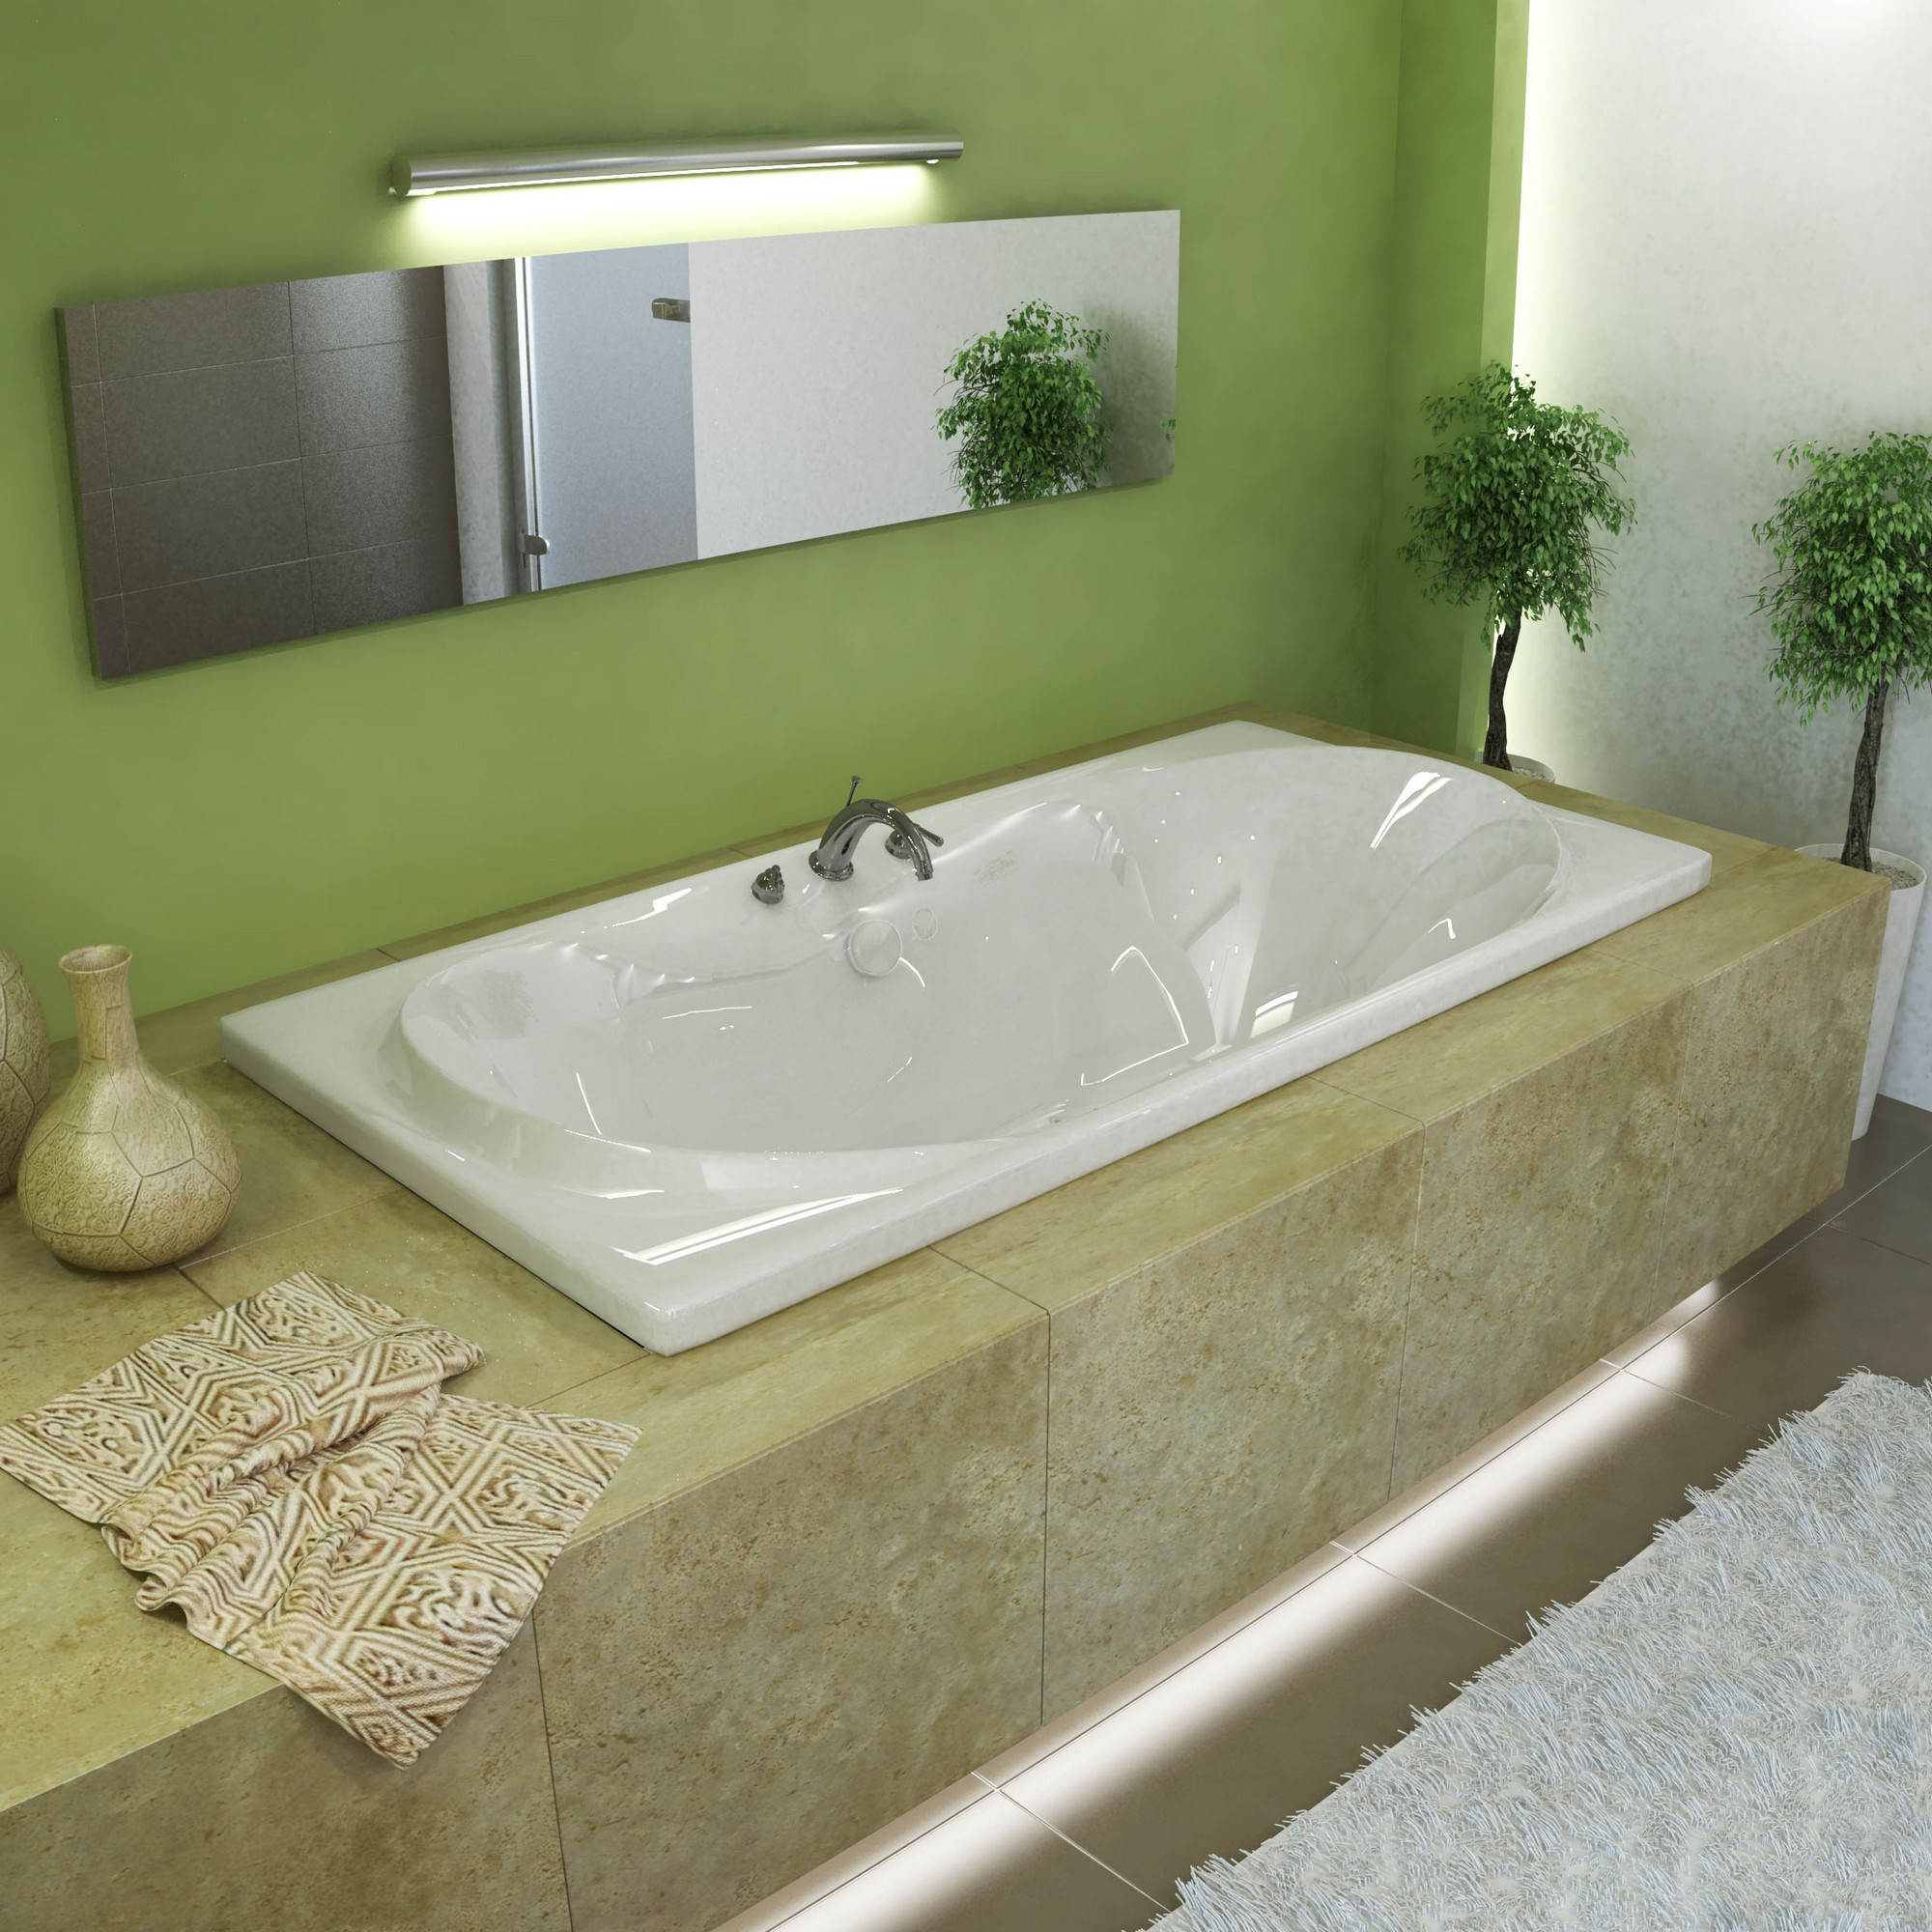 MediTub 4272WAL Whisper Rectangular Air Jetted Bathtub With Left Blower